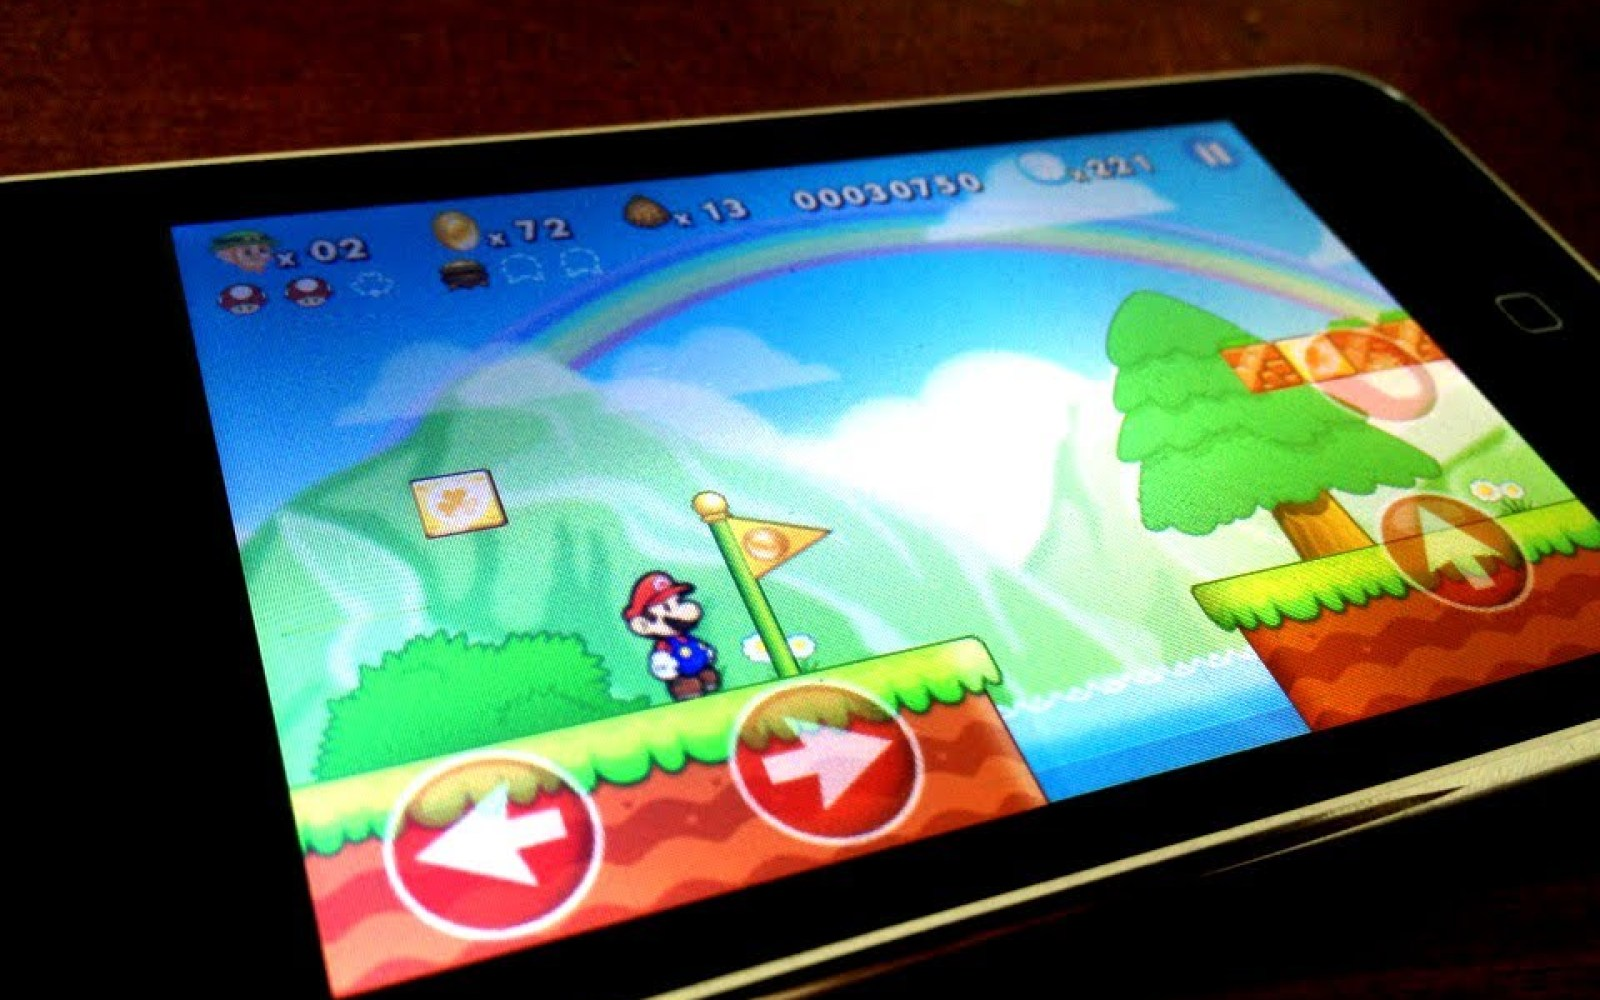 Nintendo to start making iPhone games, including first-party IP like Mario